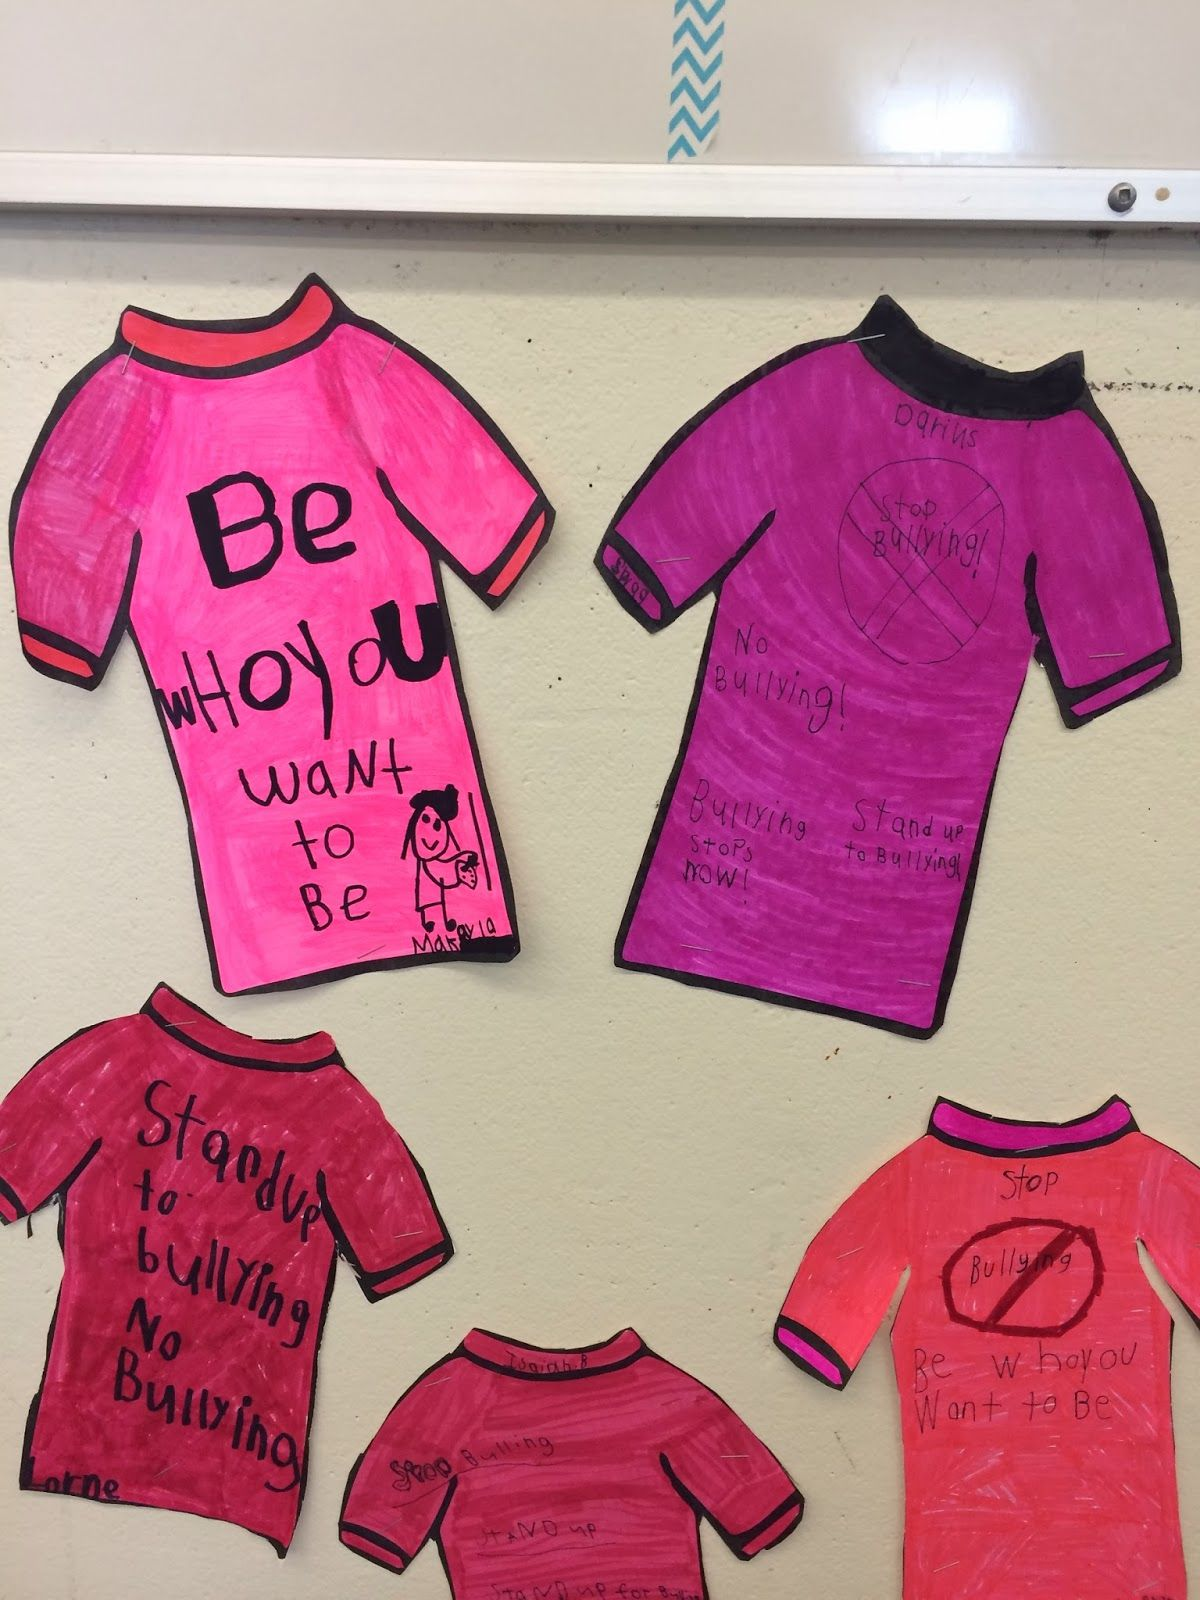 Great Ideas For Anti Bullying As Well As A School Visit